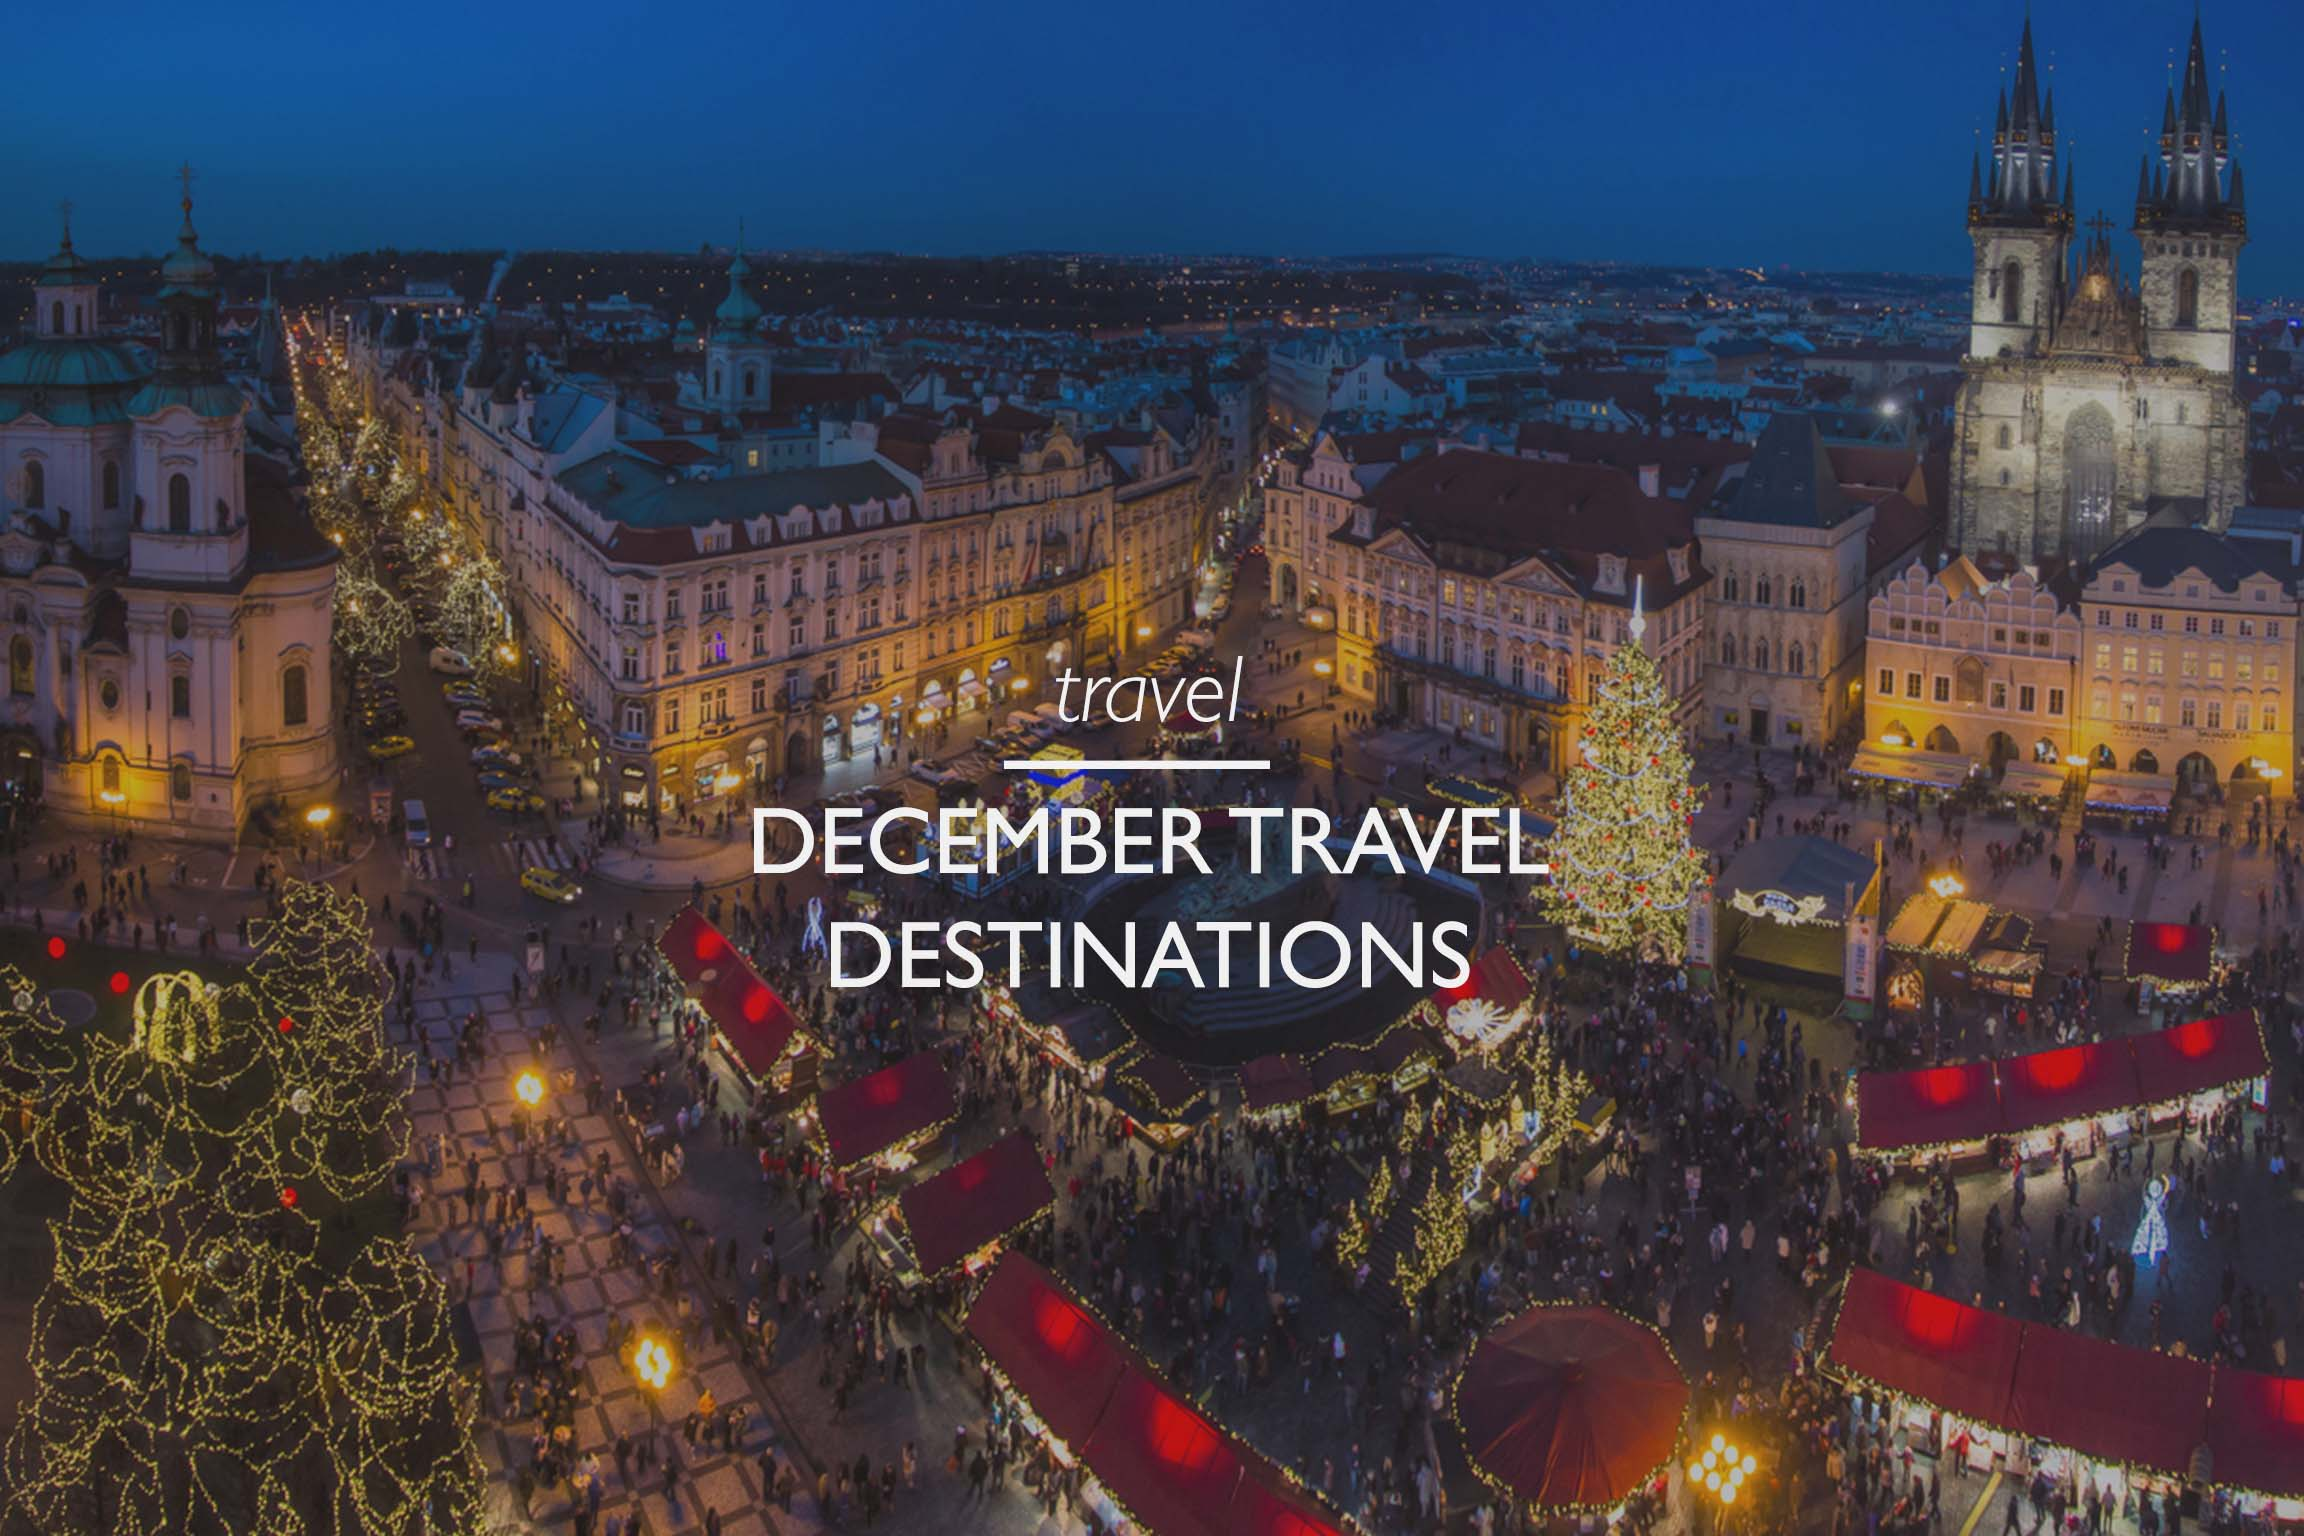 Copy of Copy of Copy of Copy of Copy of Copy of Copy of Top December Travel Destinations